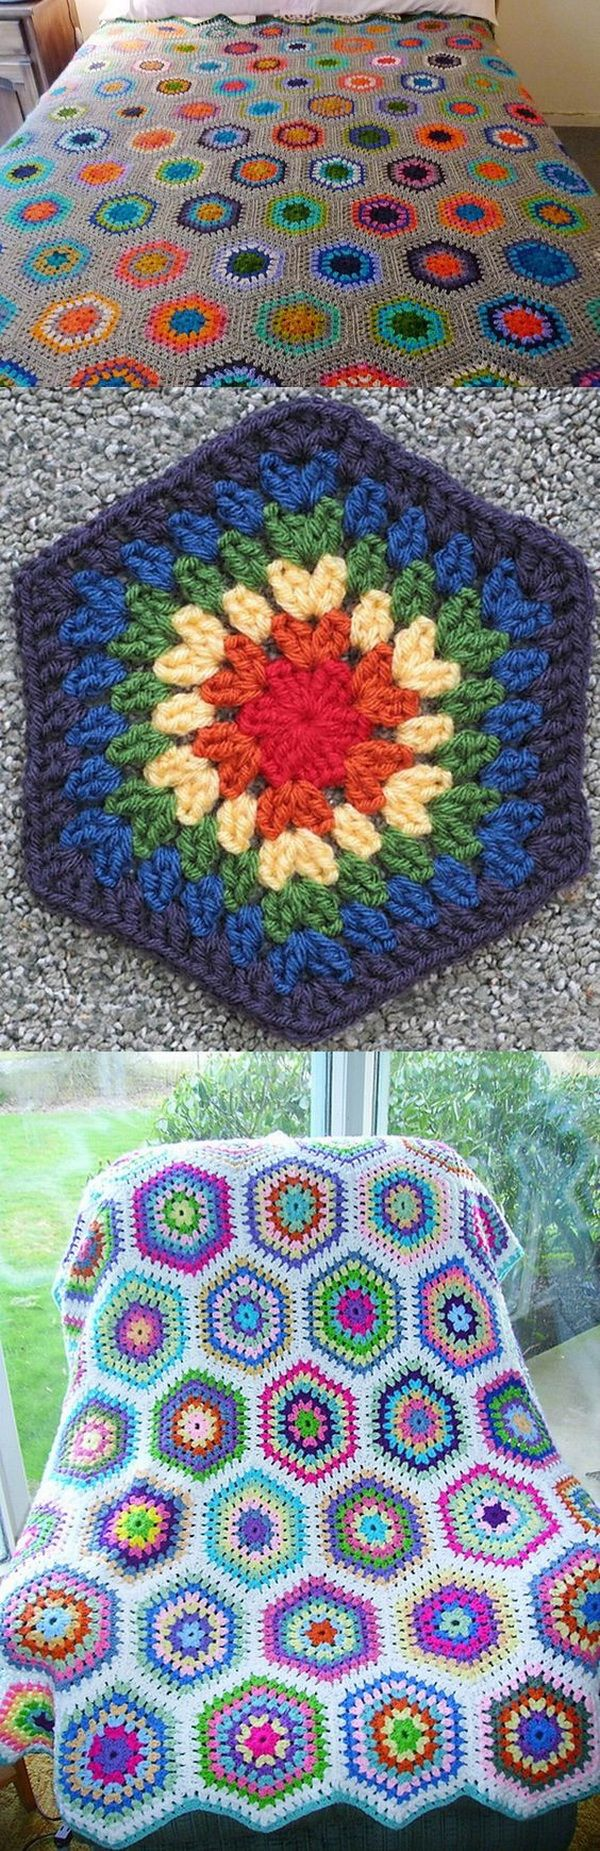 45+ Quick And Easy Crochet Blanket Patterns For Beginners | Pinterest